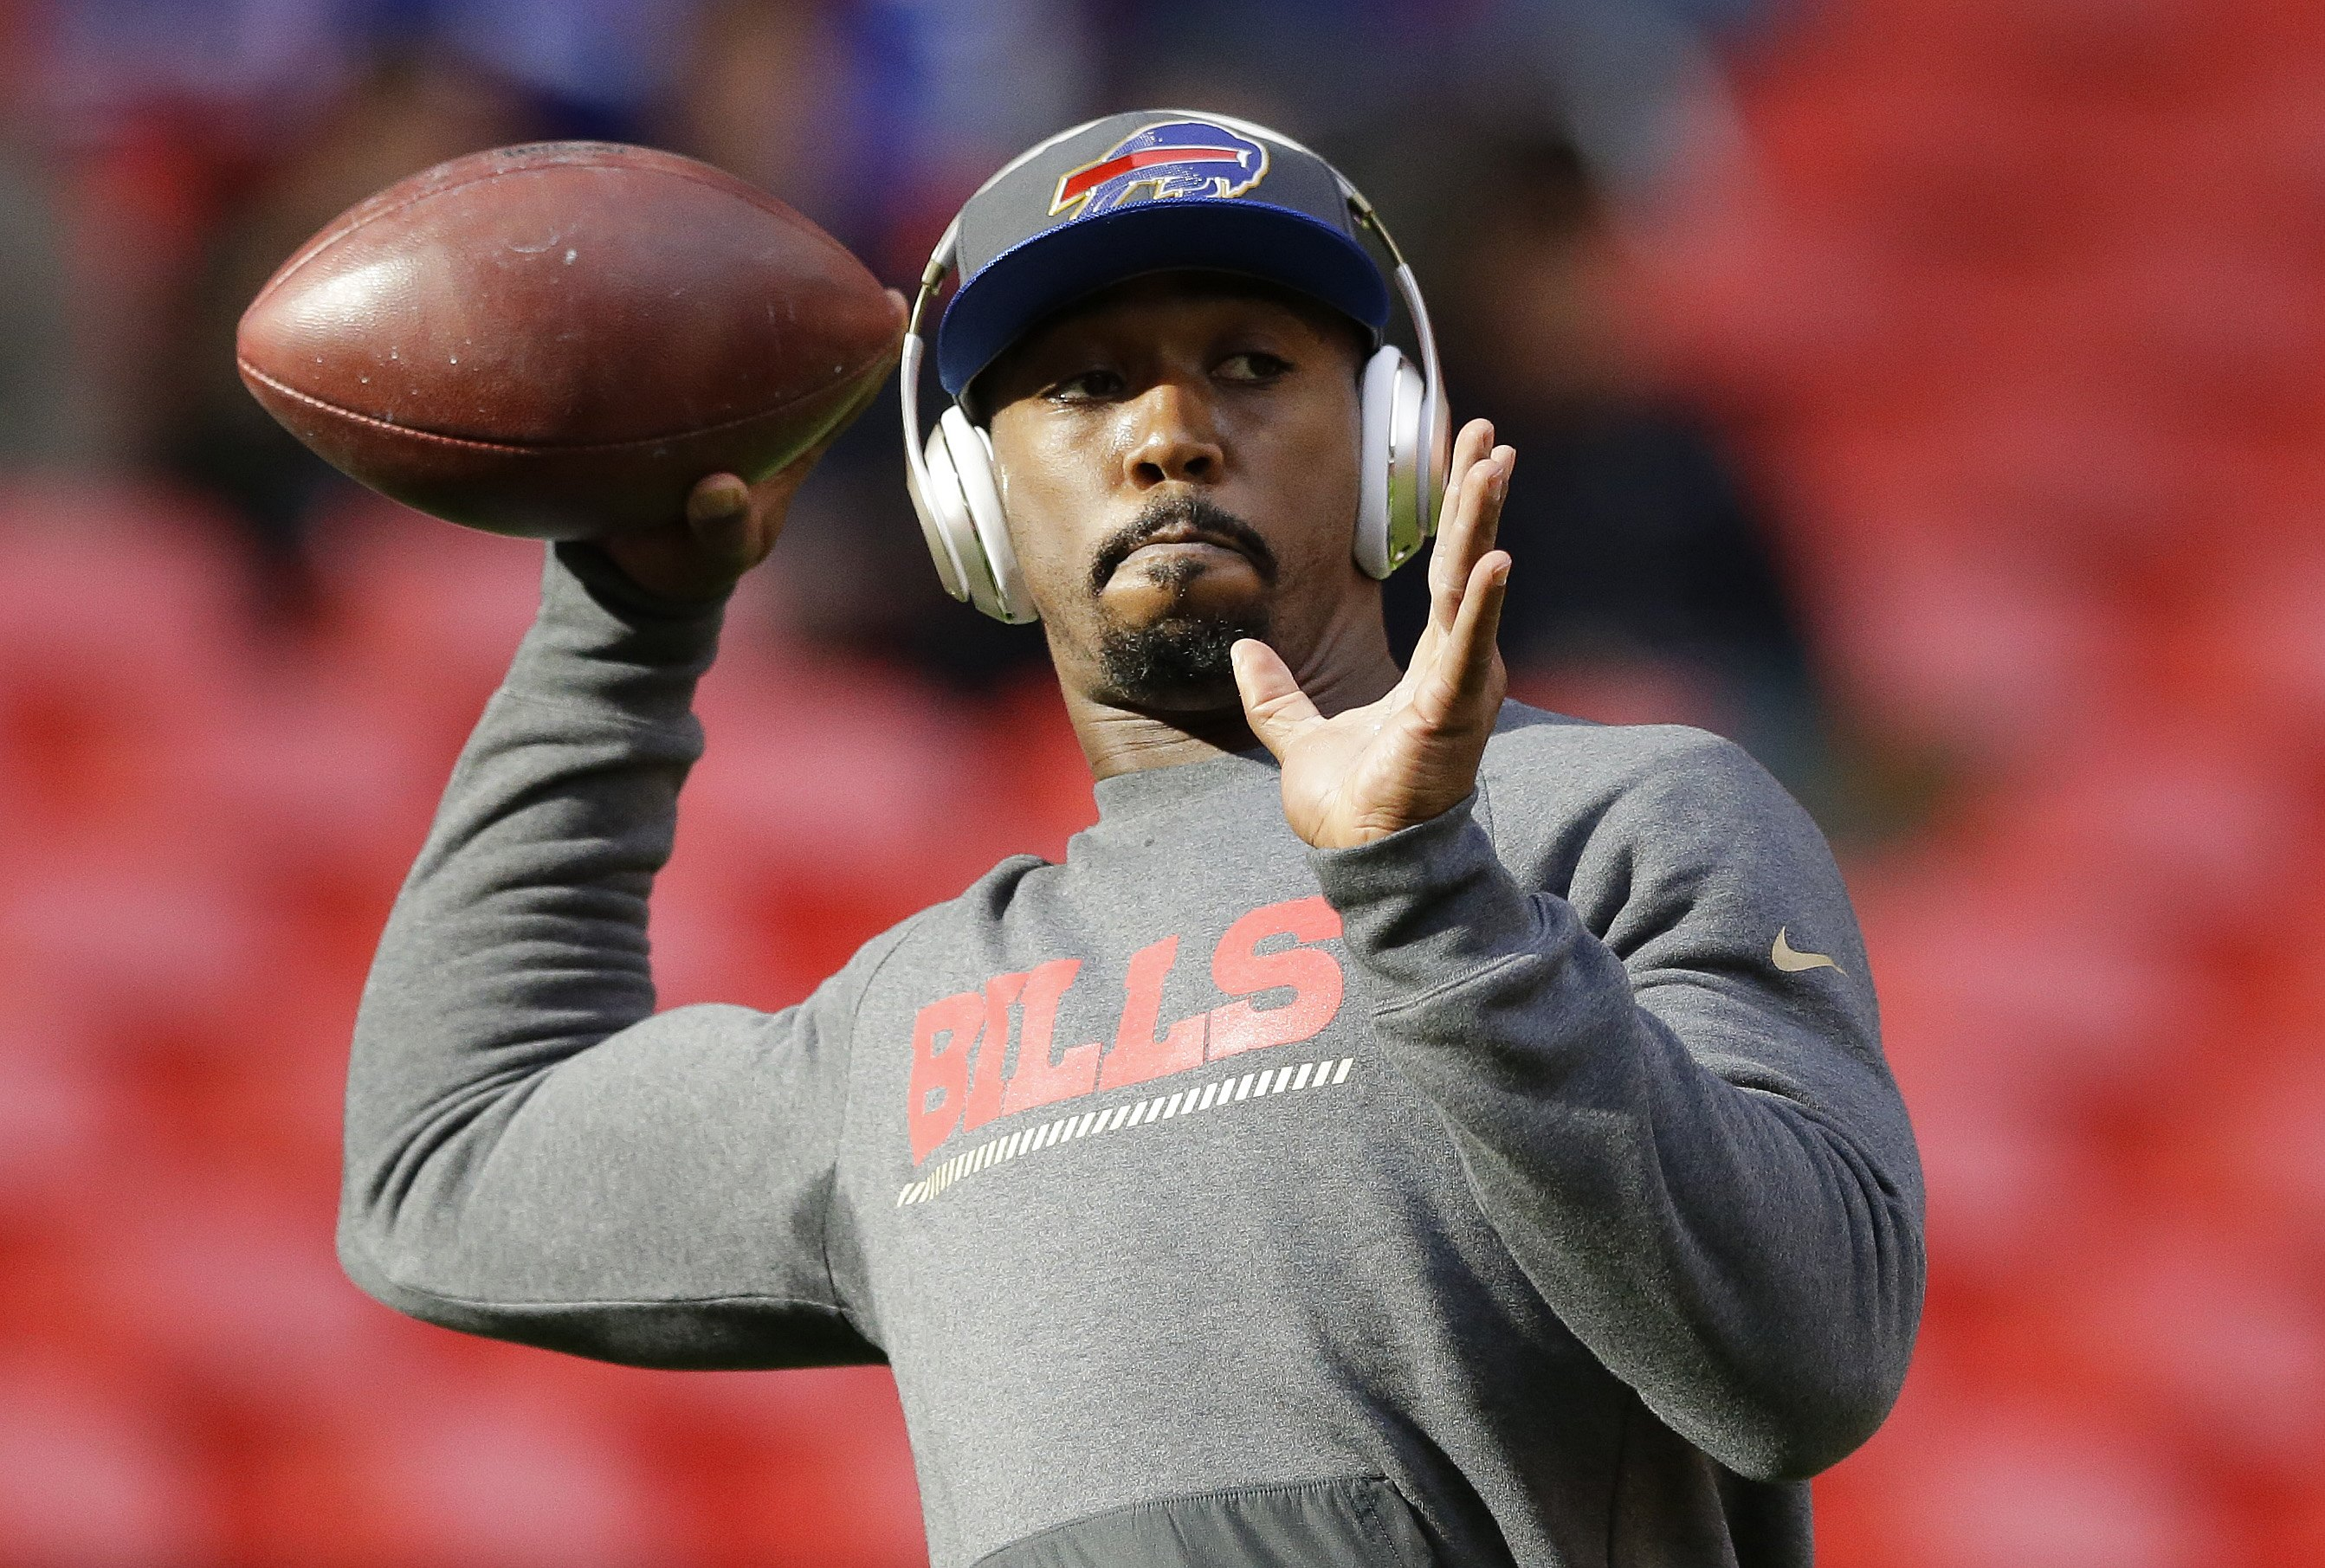 Buffalo Bills quarterback Tyrod Taylor (5) passes the ball during the warm-up before the NFL game between Buffalo Bills and Jacksonville Jaguars at Wembley Stadium in London,  Sunday, Oct. 25, 2015. Taylor is injured and will not play in the match. (AP Ph